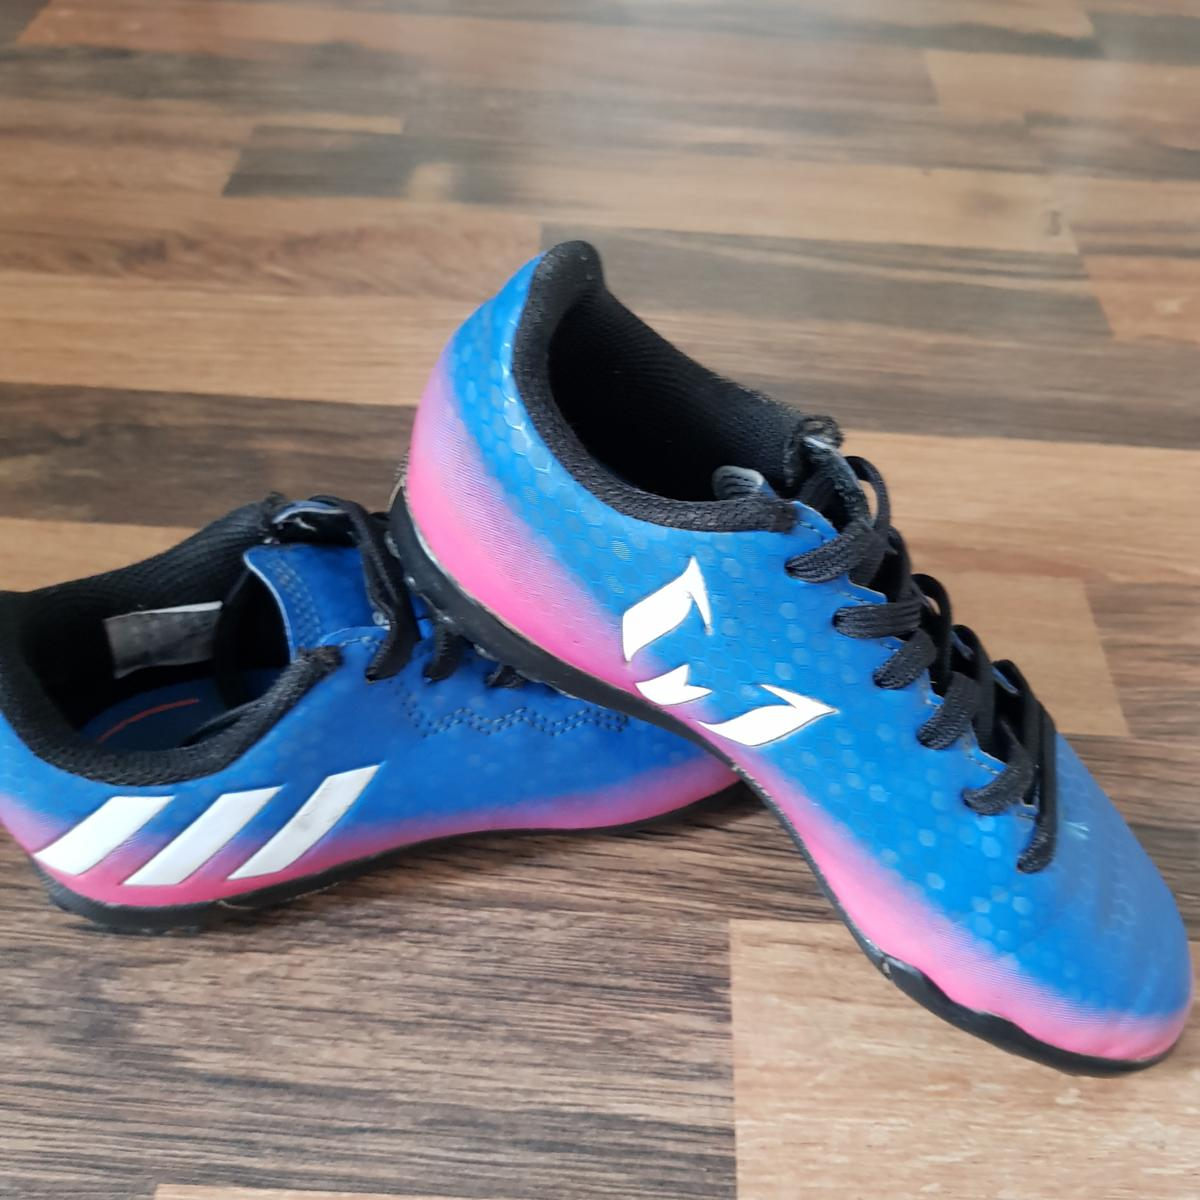 online for sale buying new wholesale dealer kids size 13 Messi football trainers